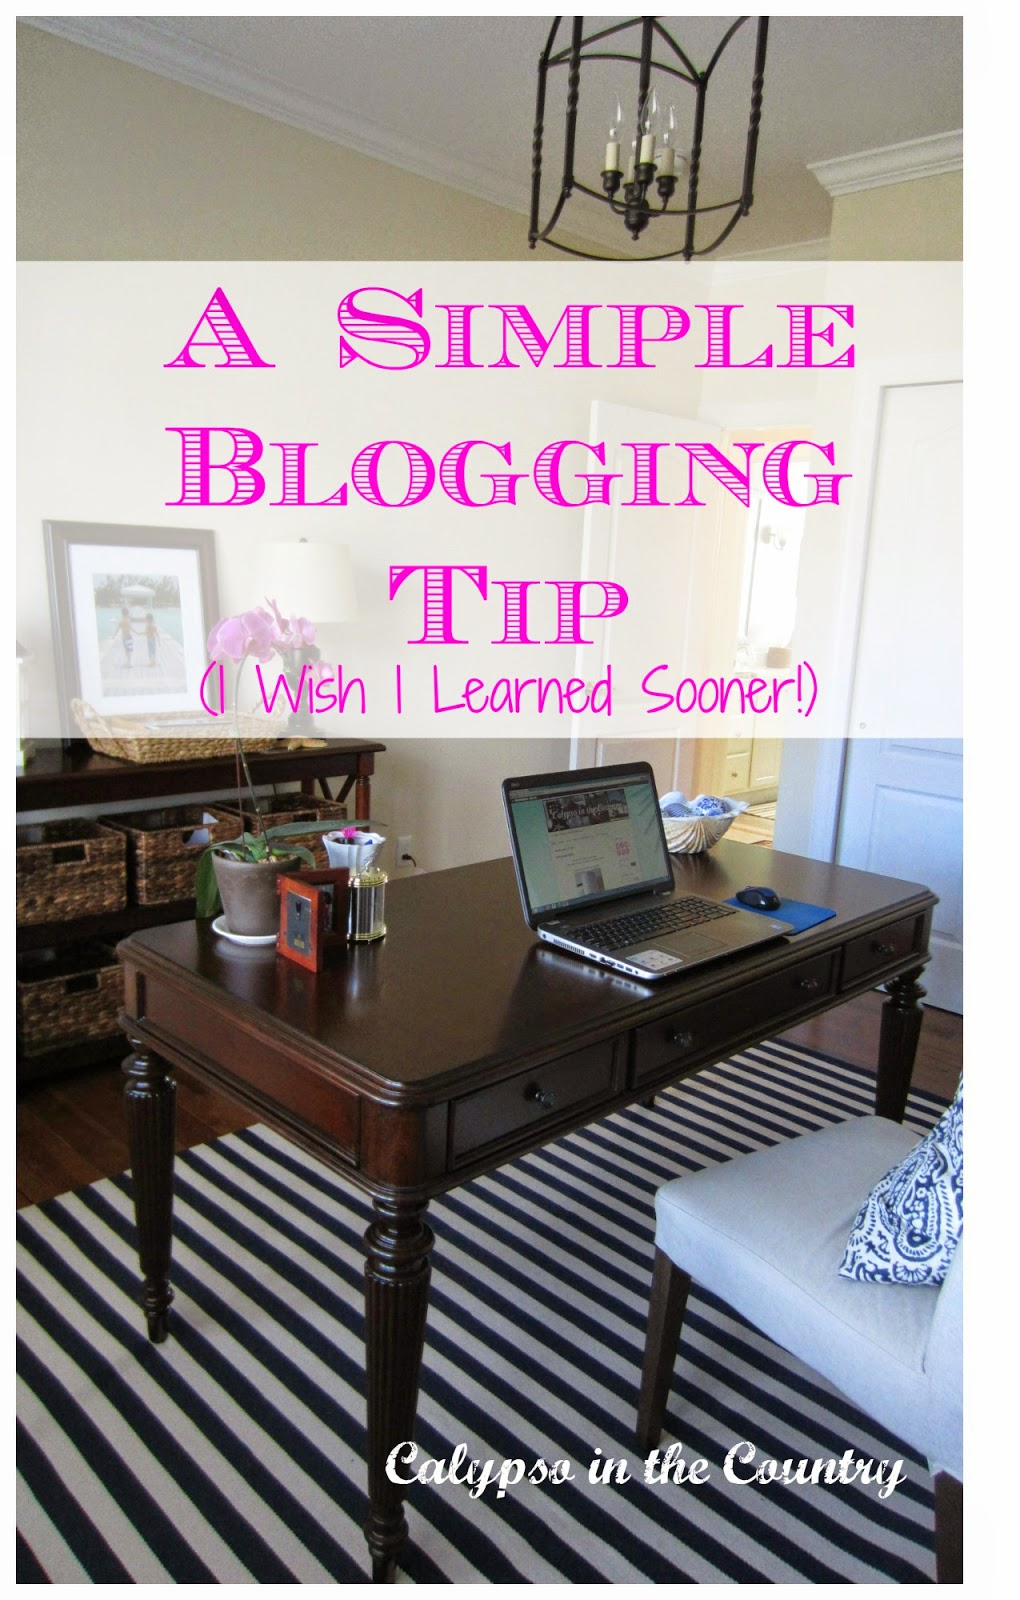 Favorite Posts of 2014 - Blogging Tip